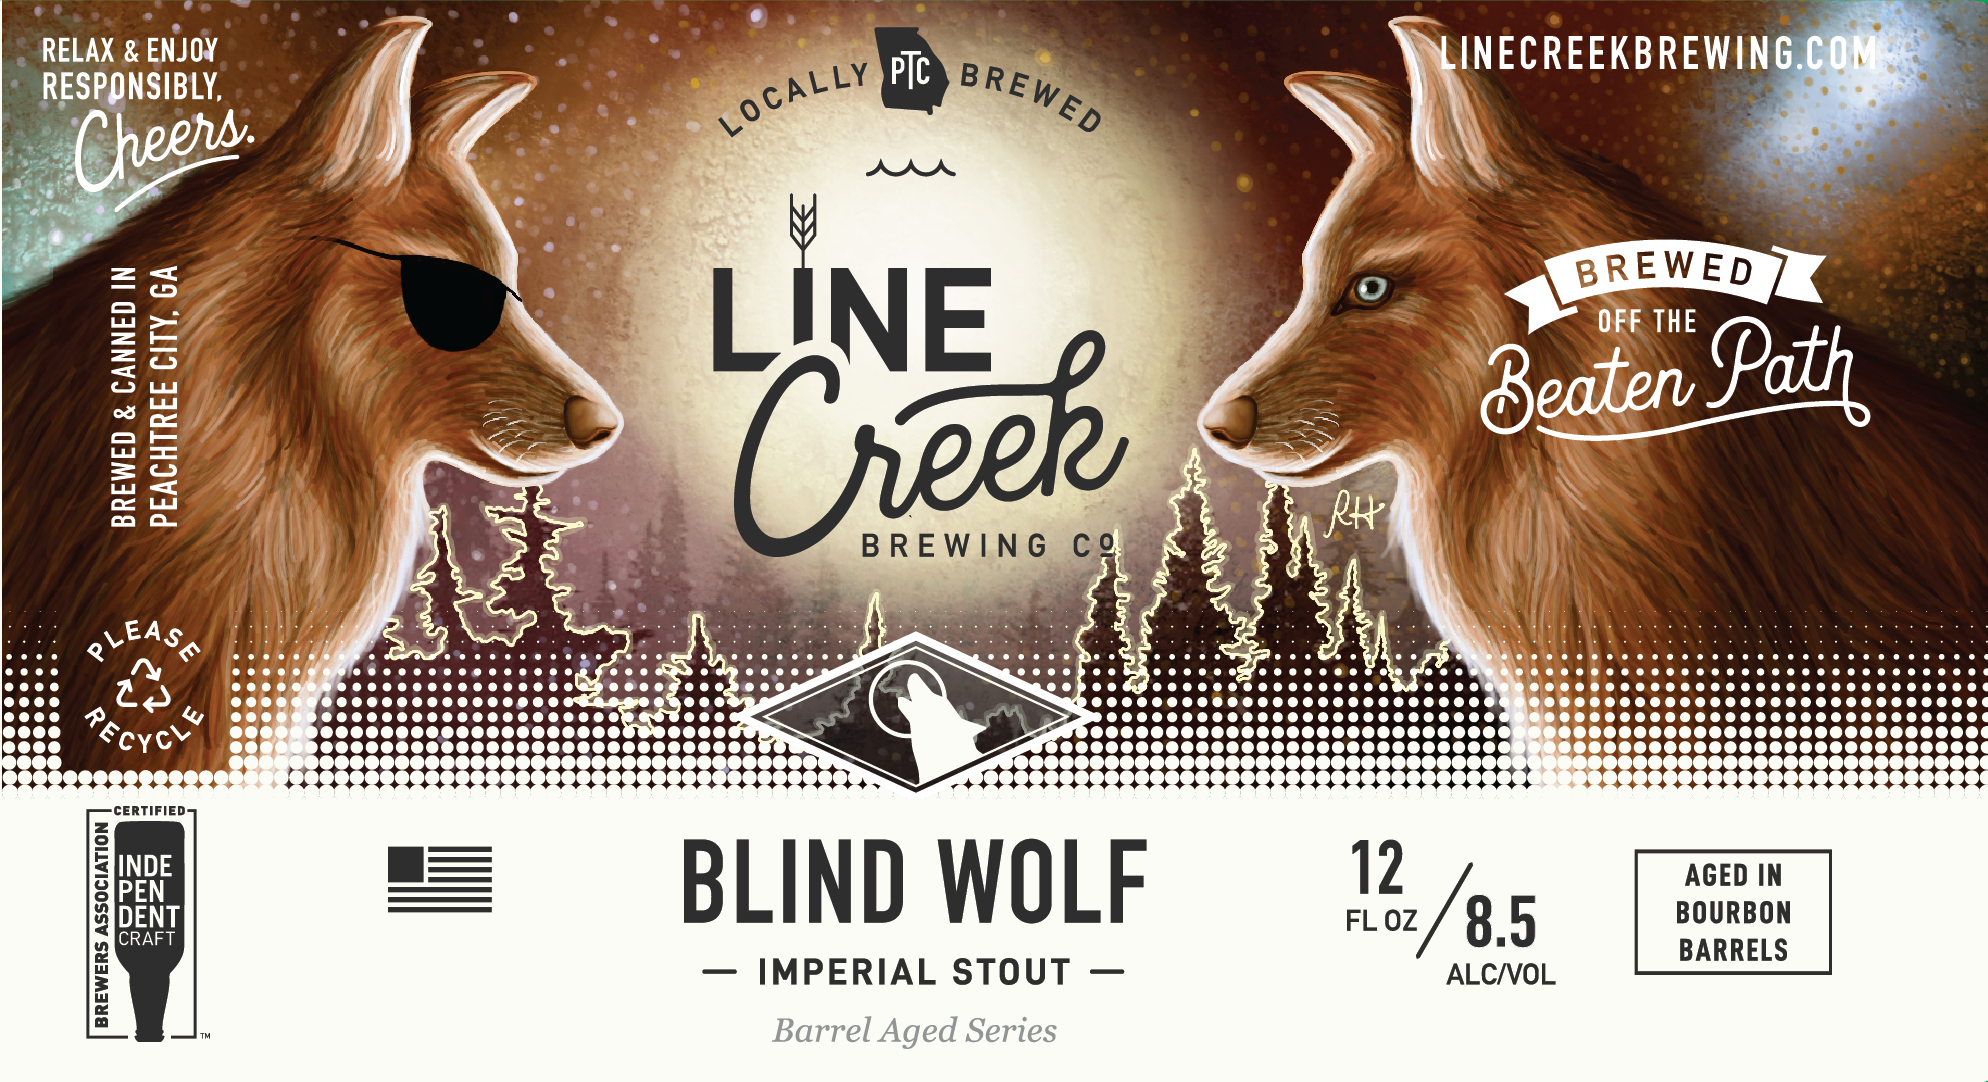 Imperial-Stout-Blind-Wolf